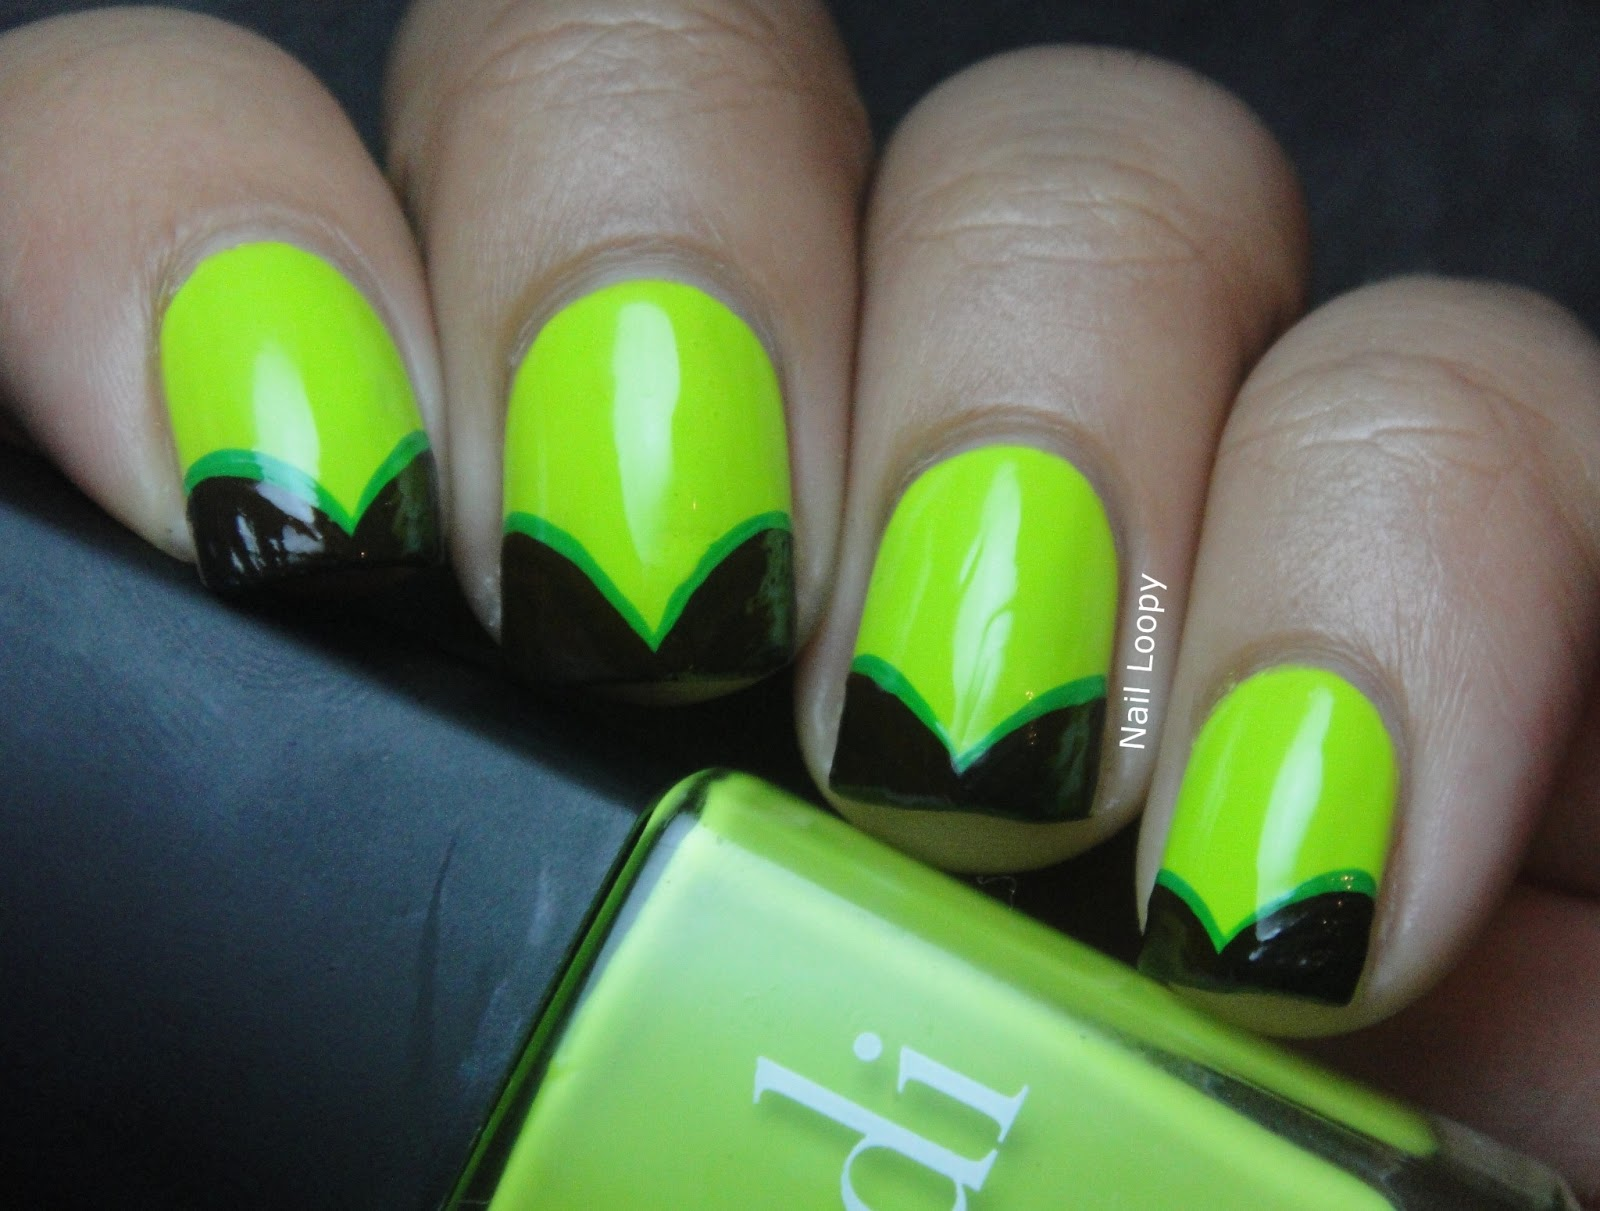 BONDI - THE LIMELIGHT FISHTAIL NAILS